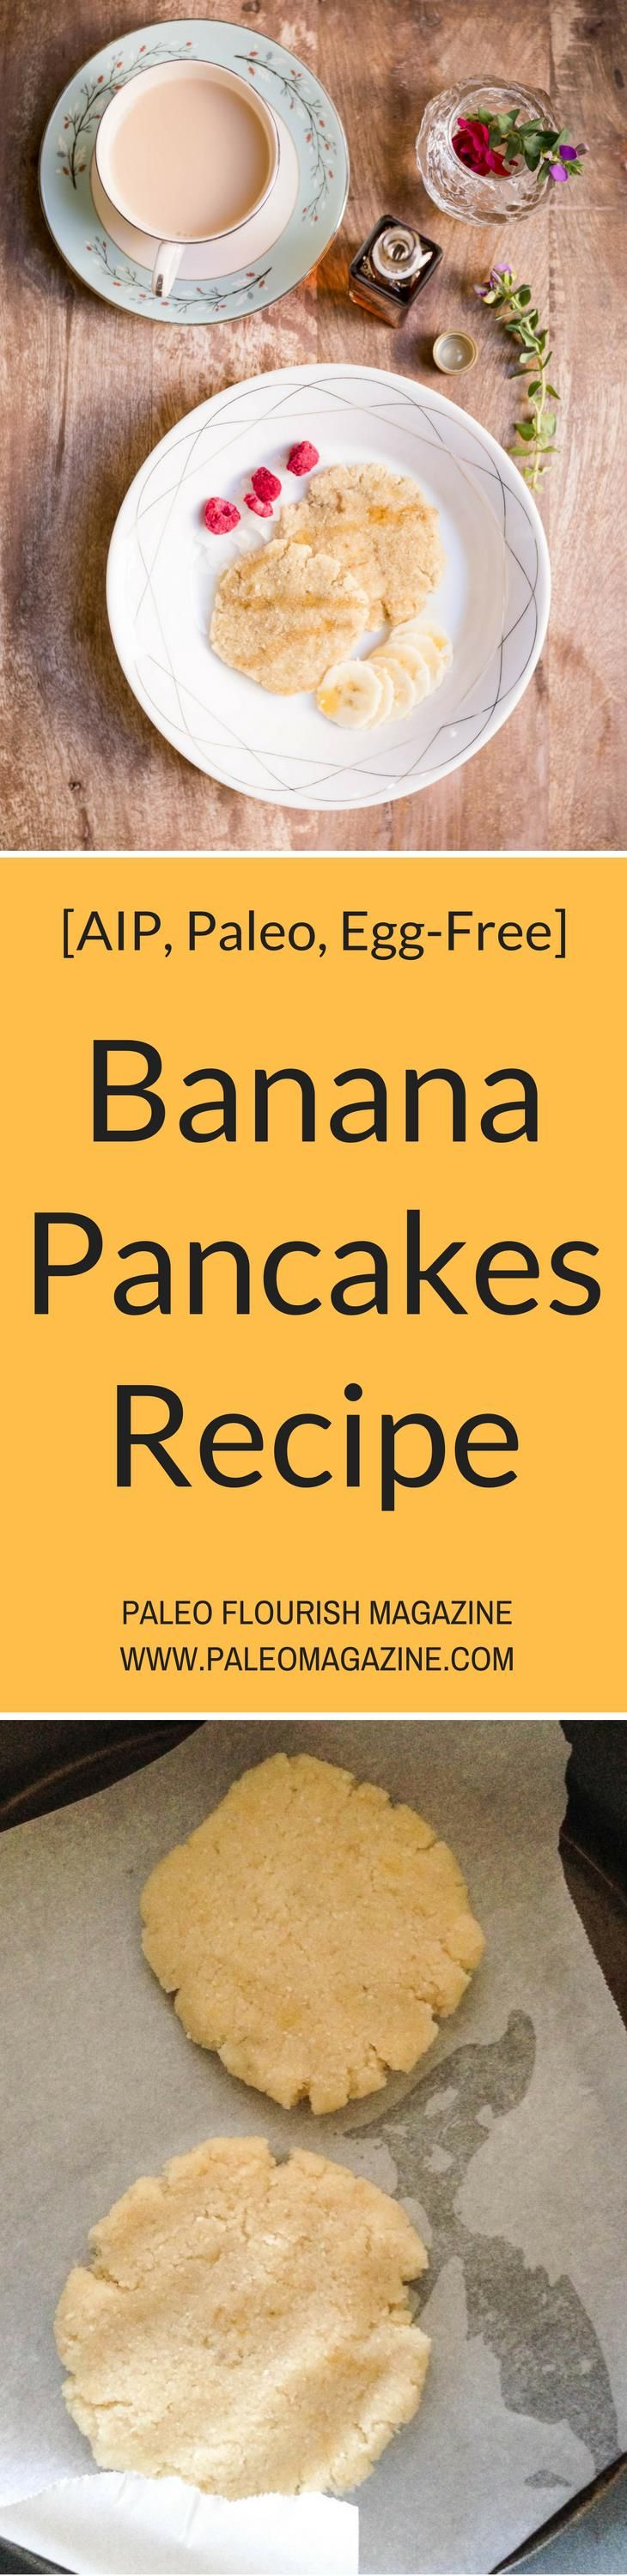 Banana Pancakes Recipe [AIP, Paleo, Egg-Free] #paleo #eggfree #aip #recipes - http://paleomagazine.com/paleo-aip-banana-pancakes-recipe